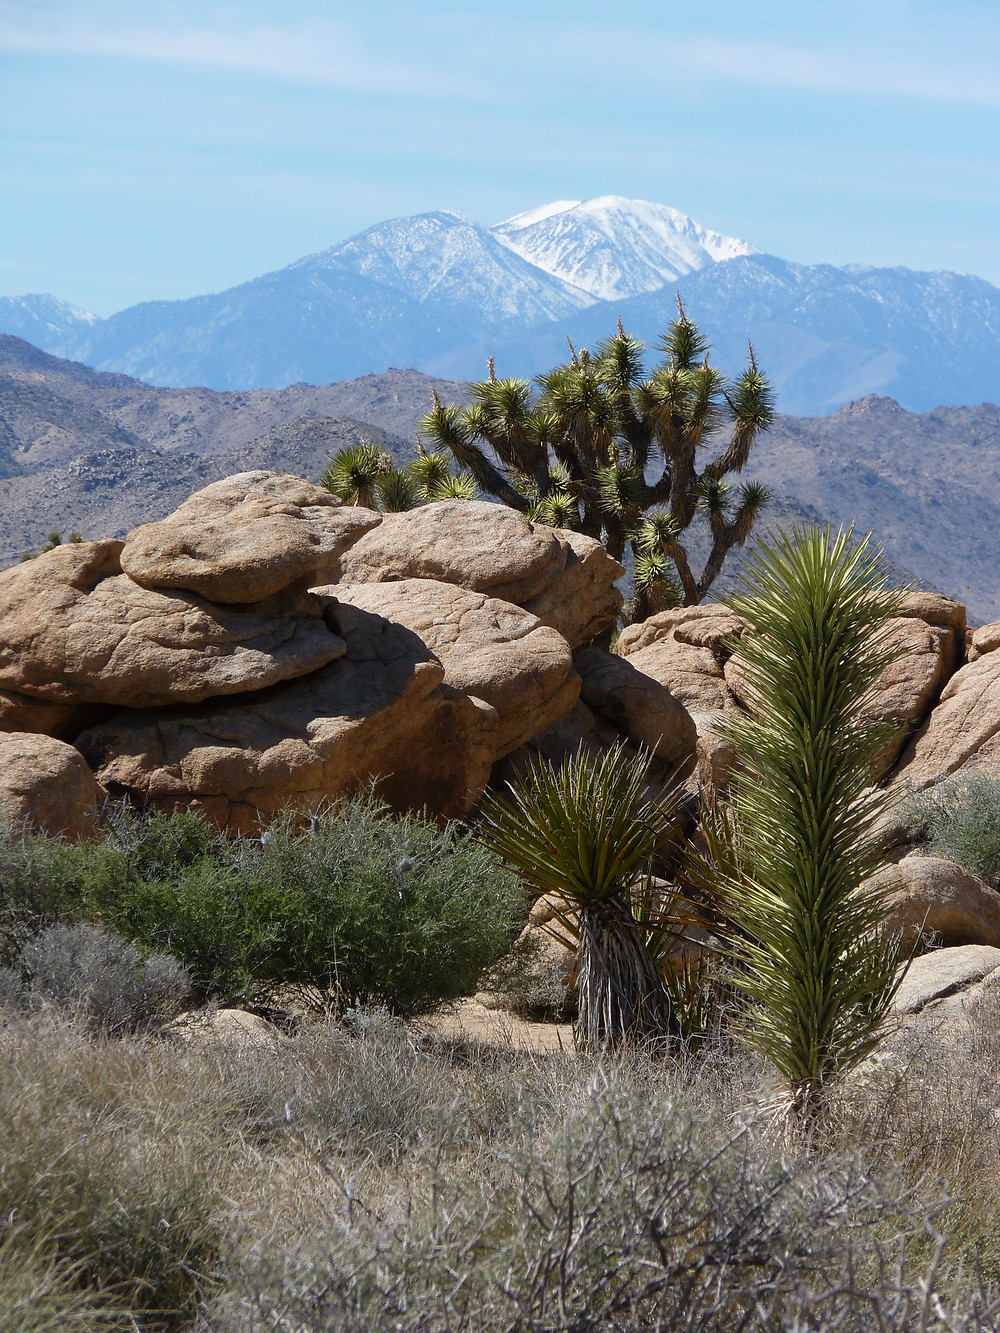 Looking across Joshua Tree National Park to Mt. San Jacinto.